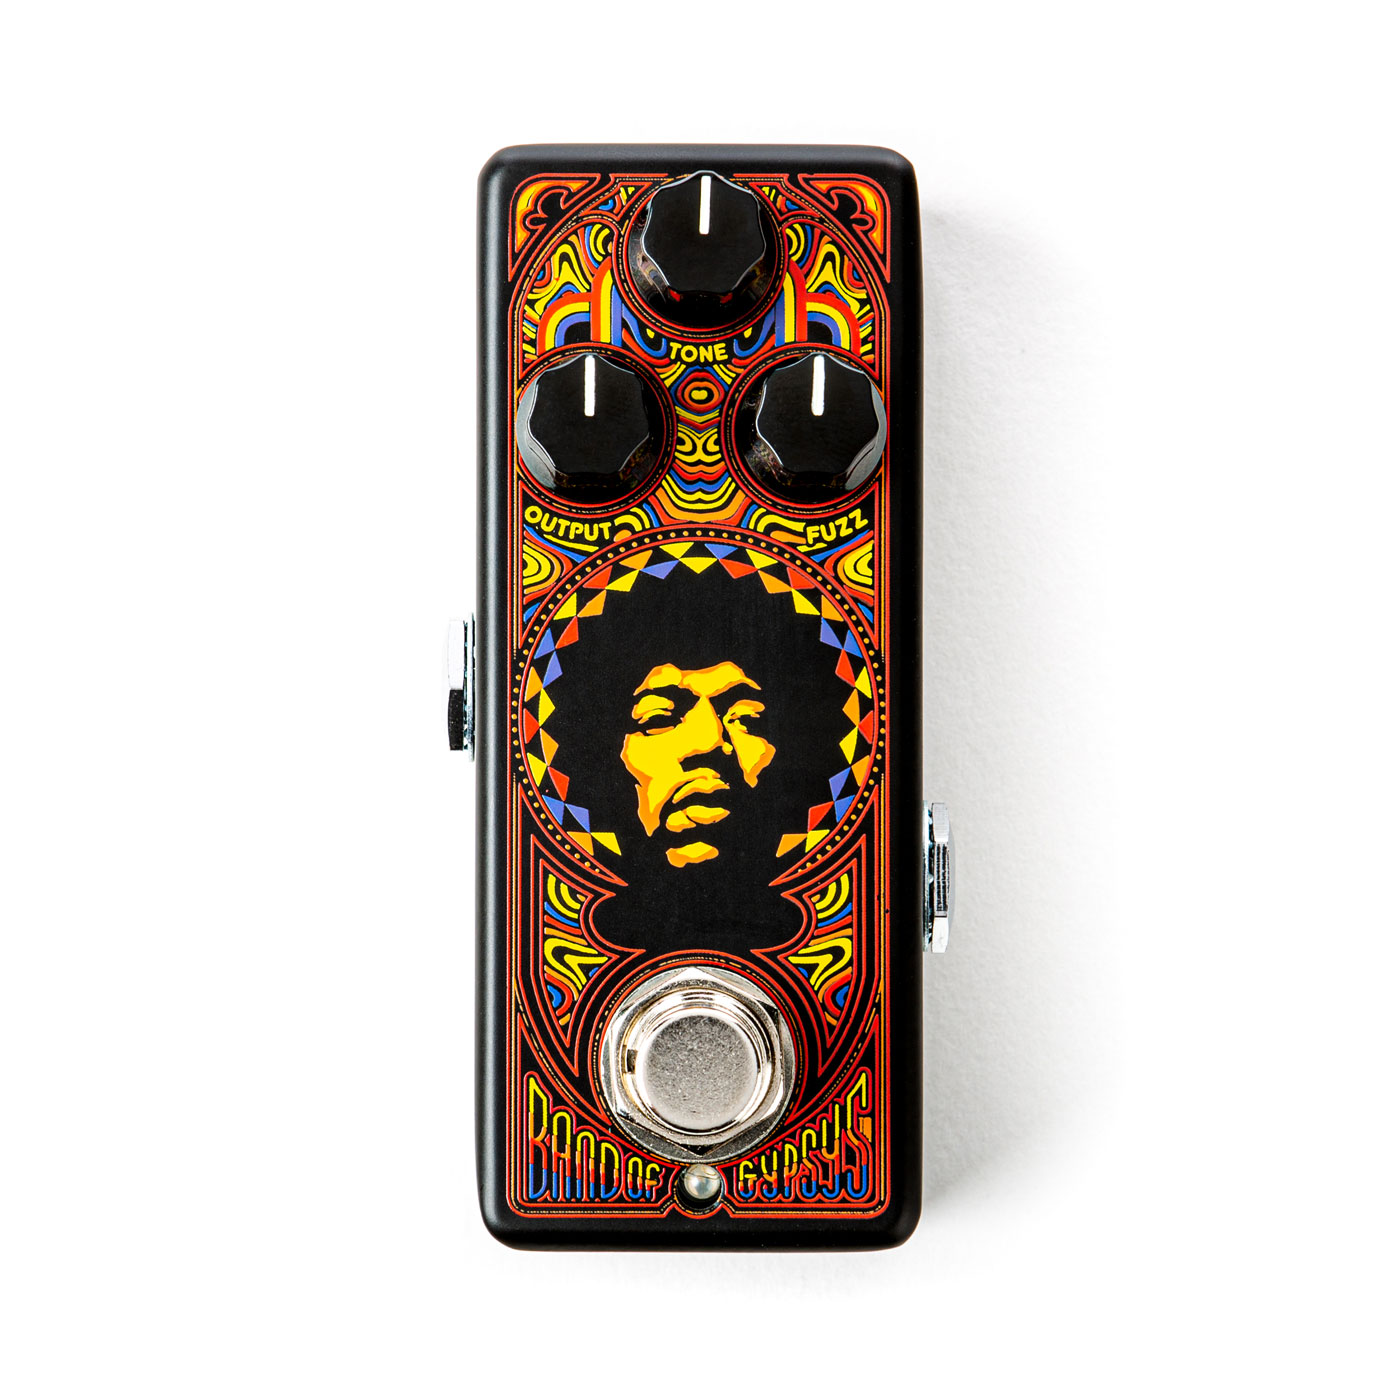 Authentic Hendrix '69 Psych Series Band of Gypsys Fuzz - JHW4